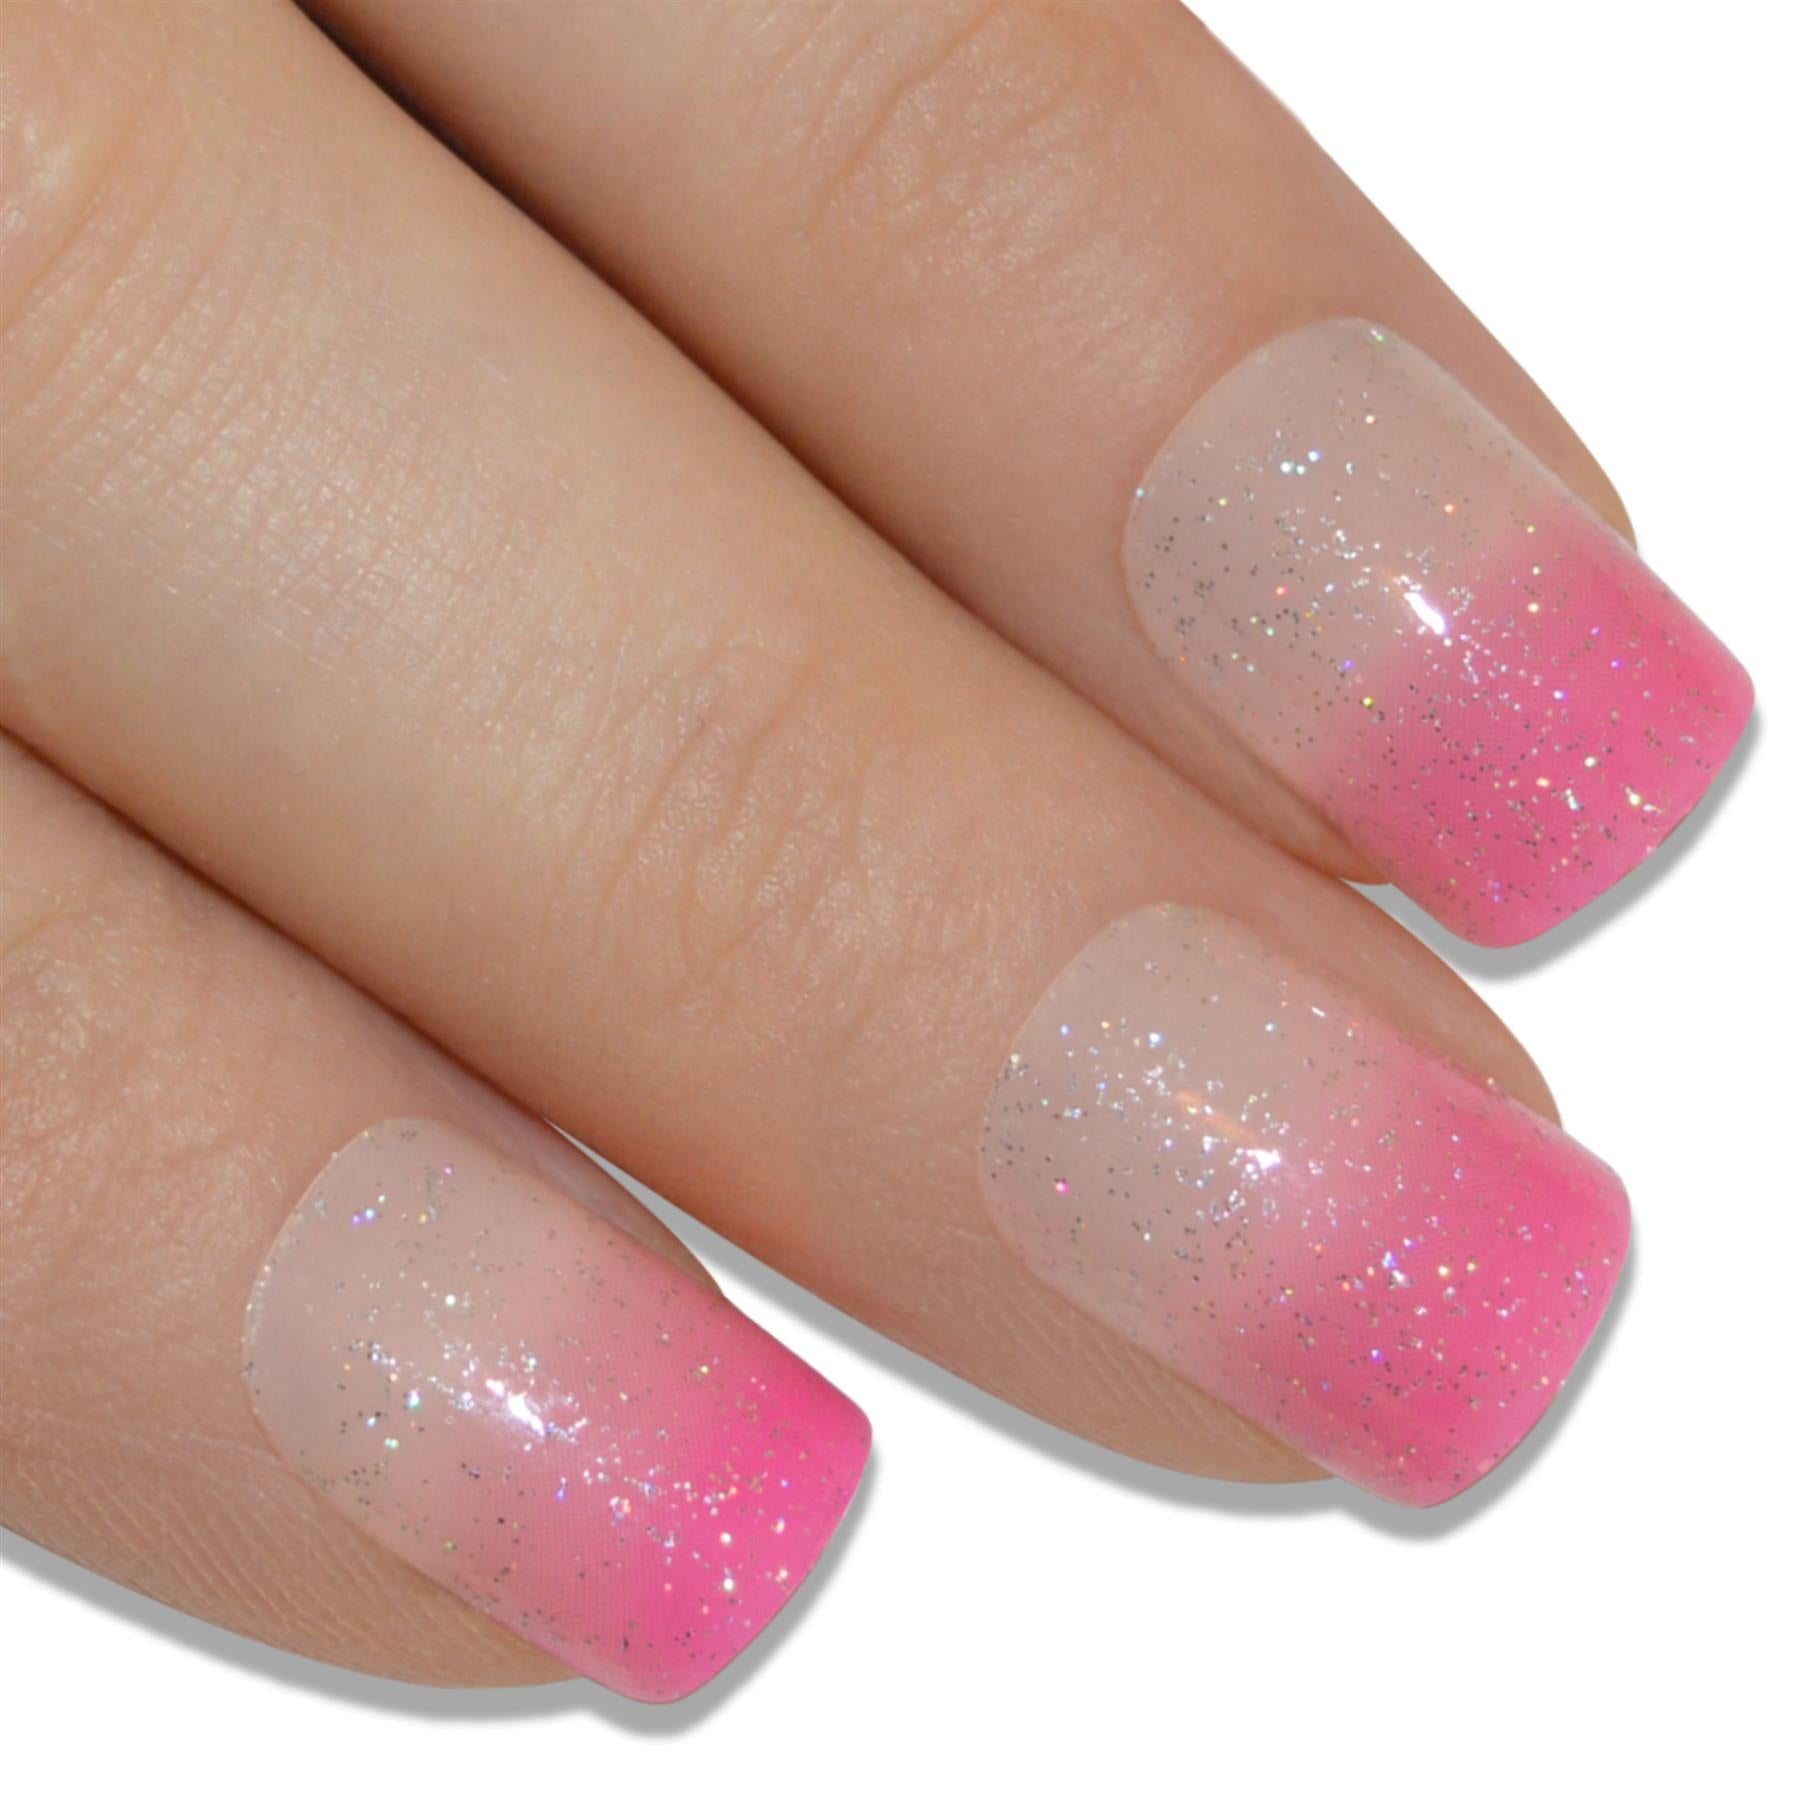 False Nails by Bling Art Pink Glitter French Manicure Fake Medium Tips with Glue, Personal Care by Bling Art